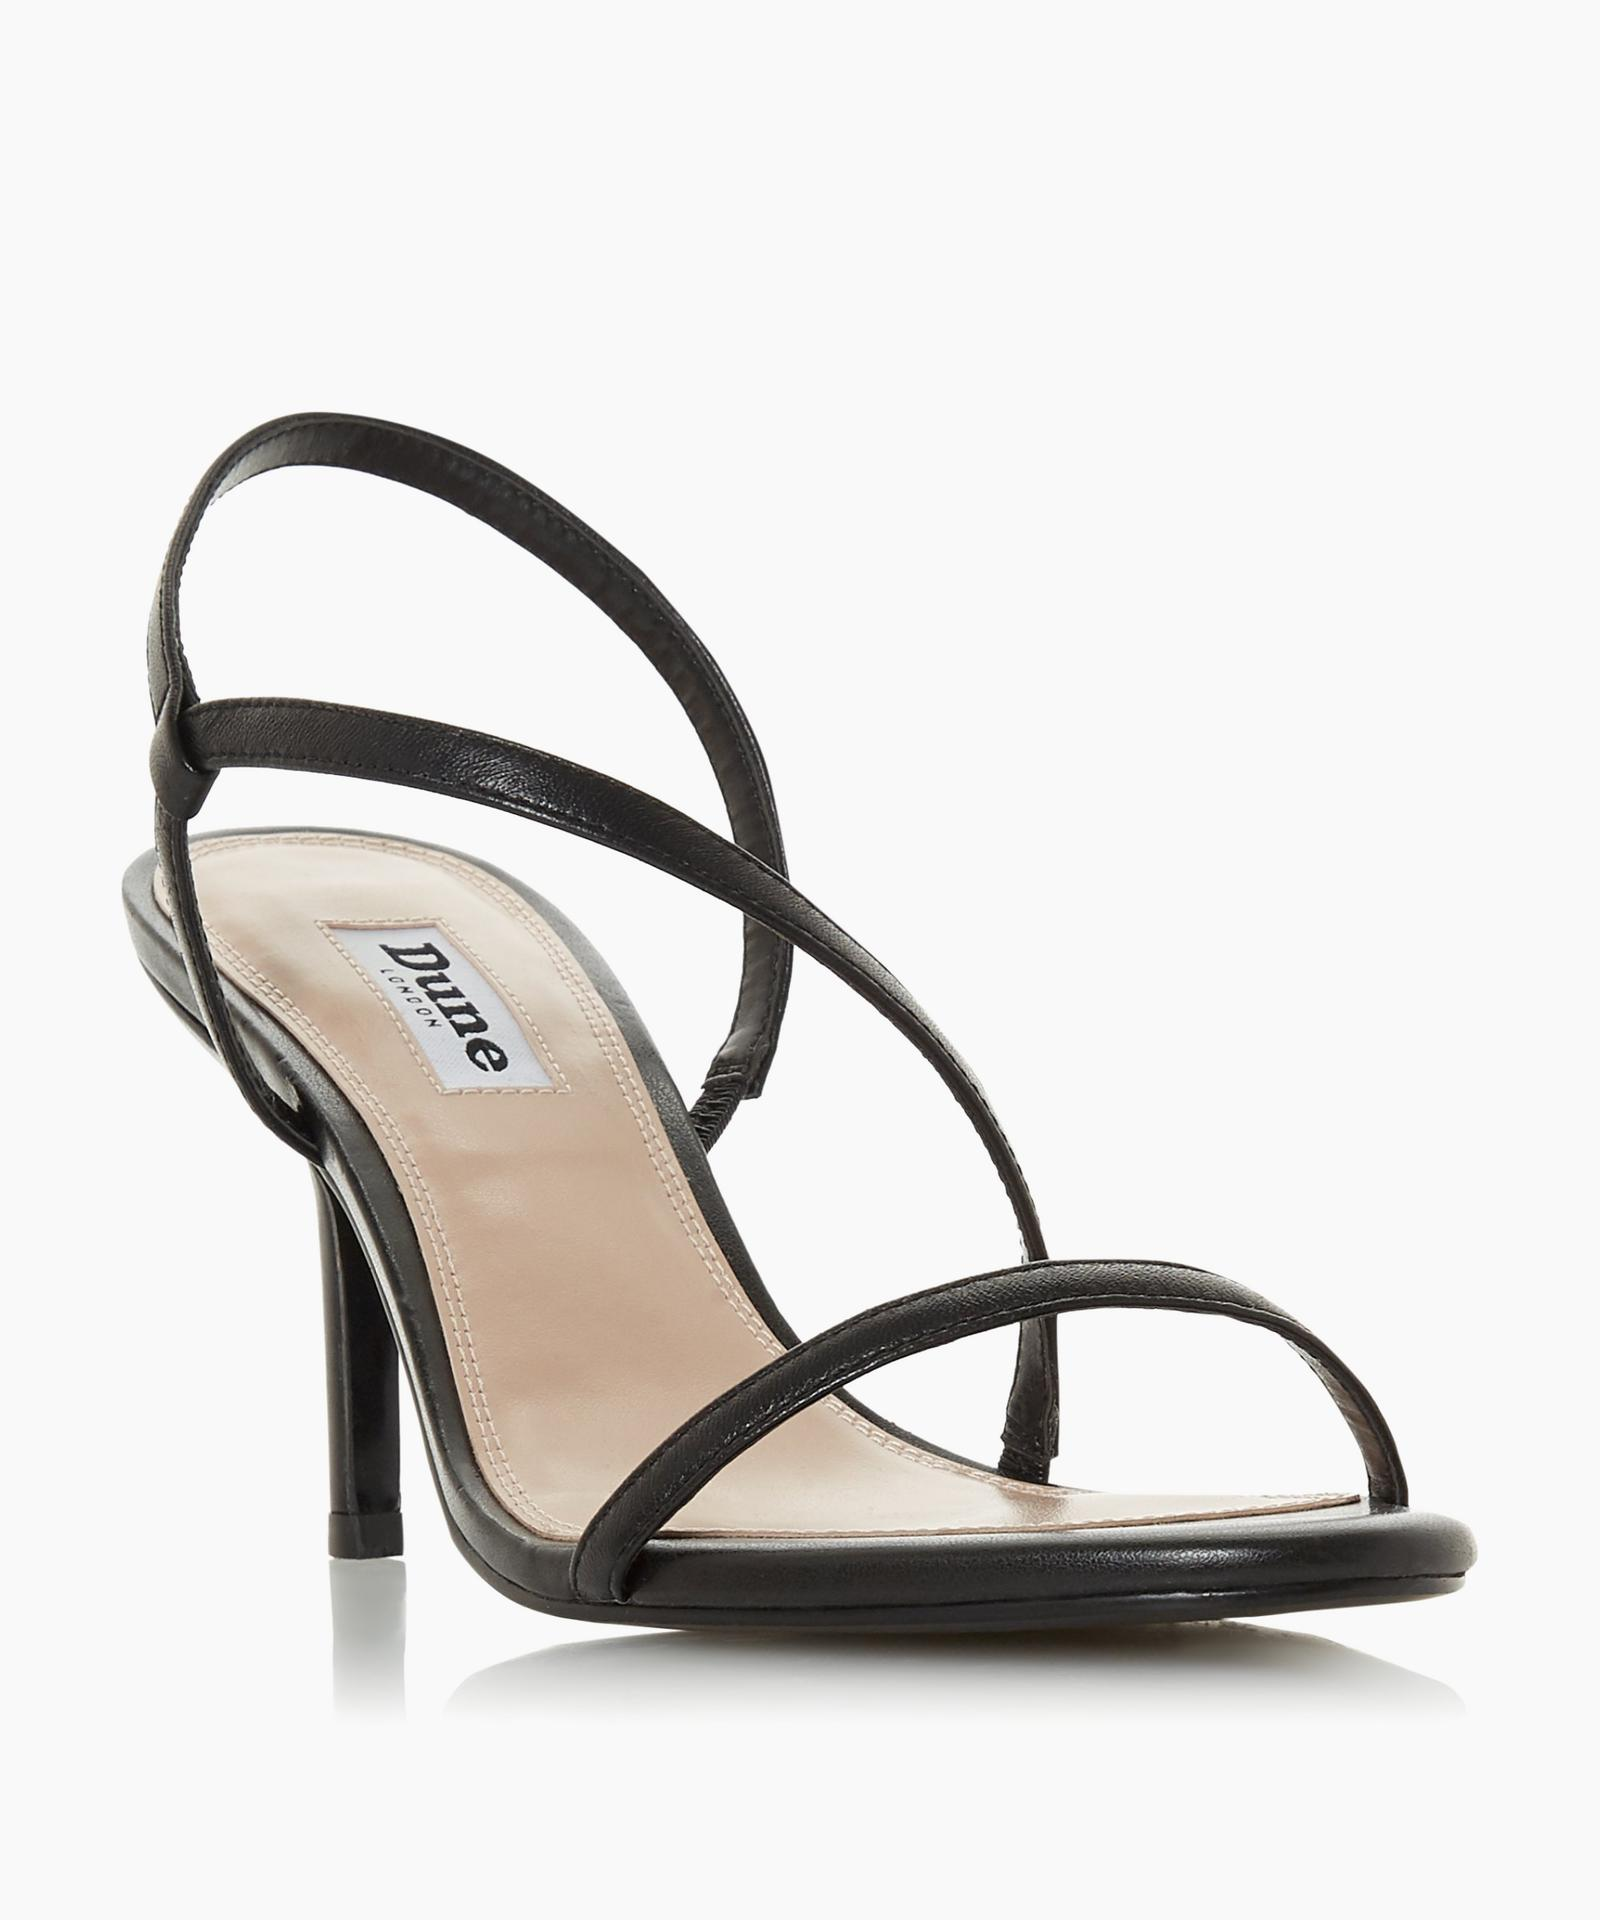 MOJO DI - MOJO DI - Strappy High Stiletto Heel Sandal